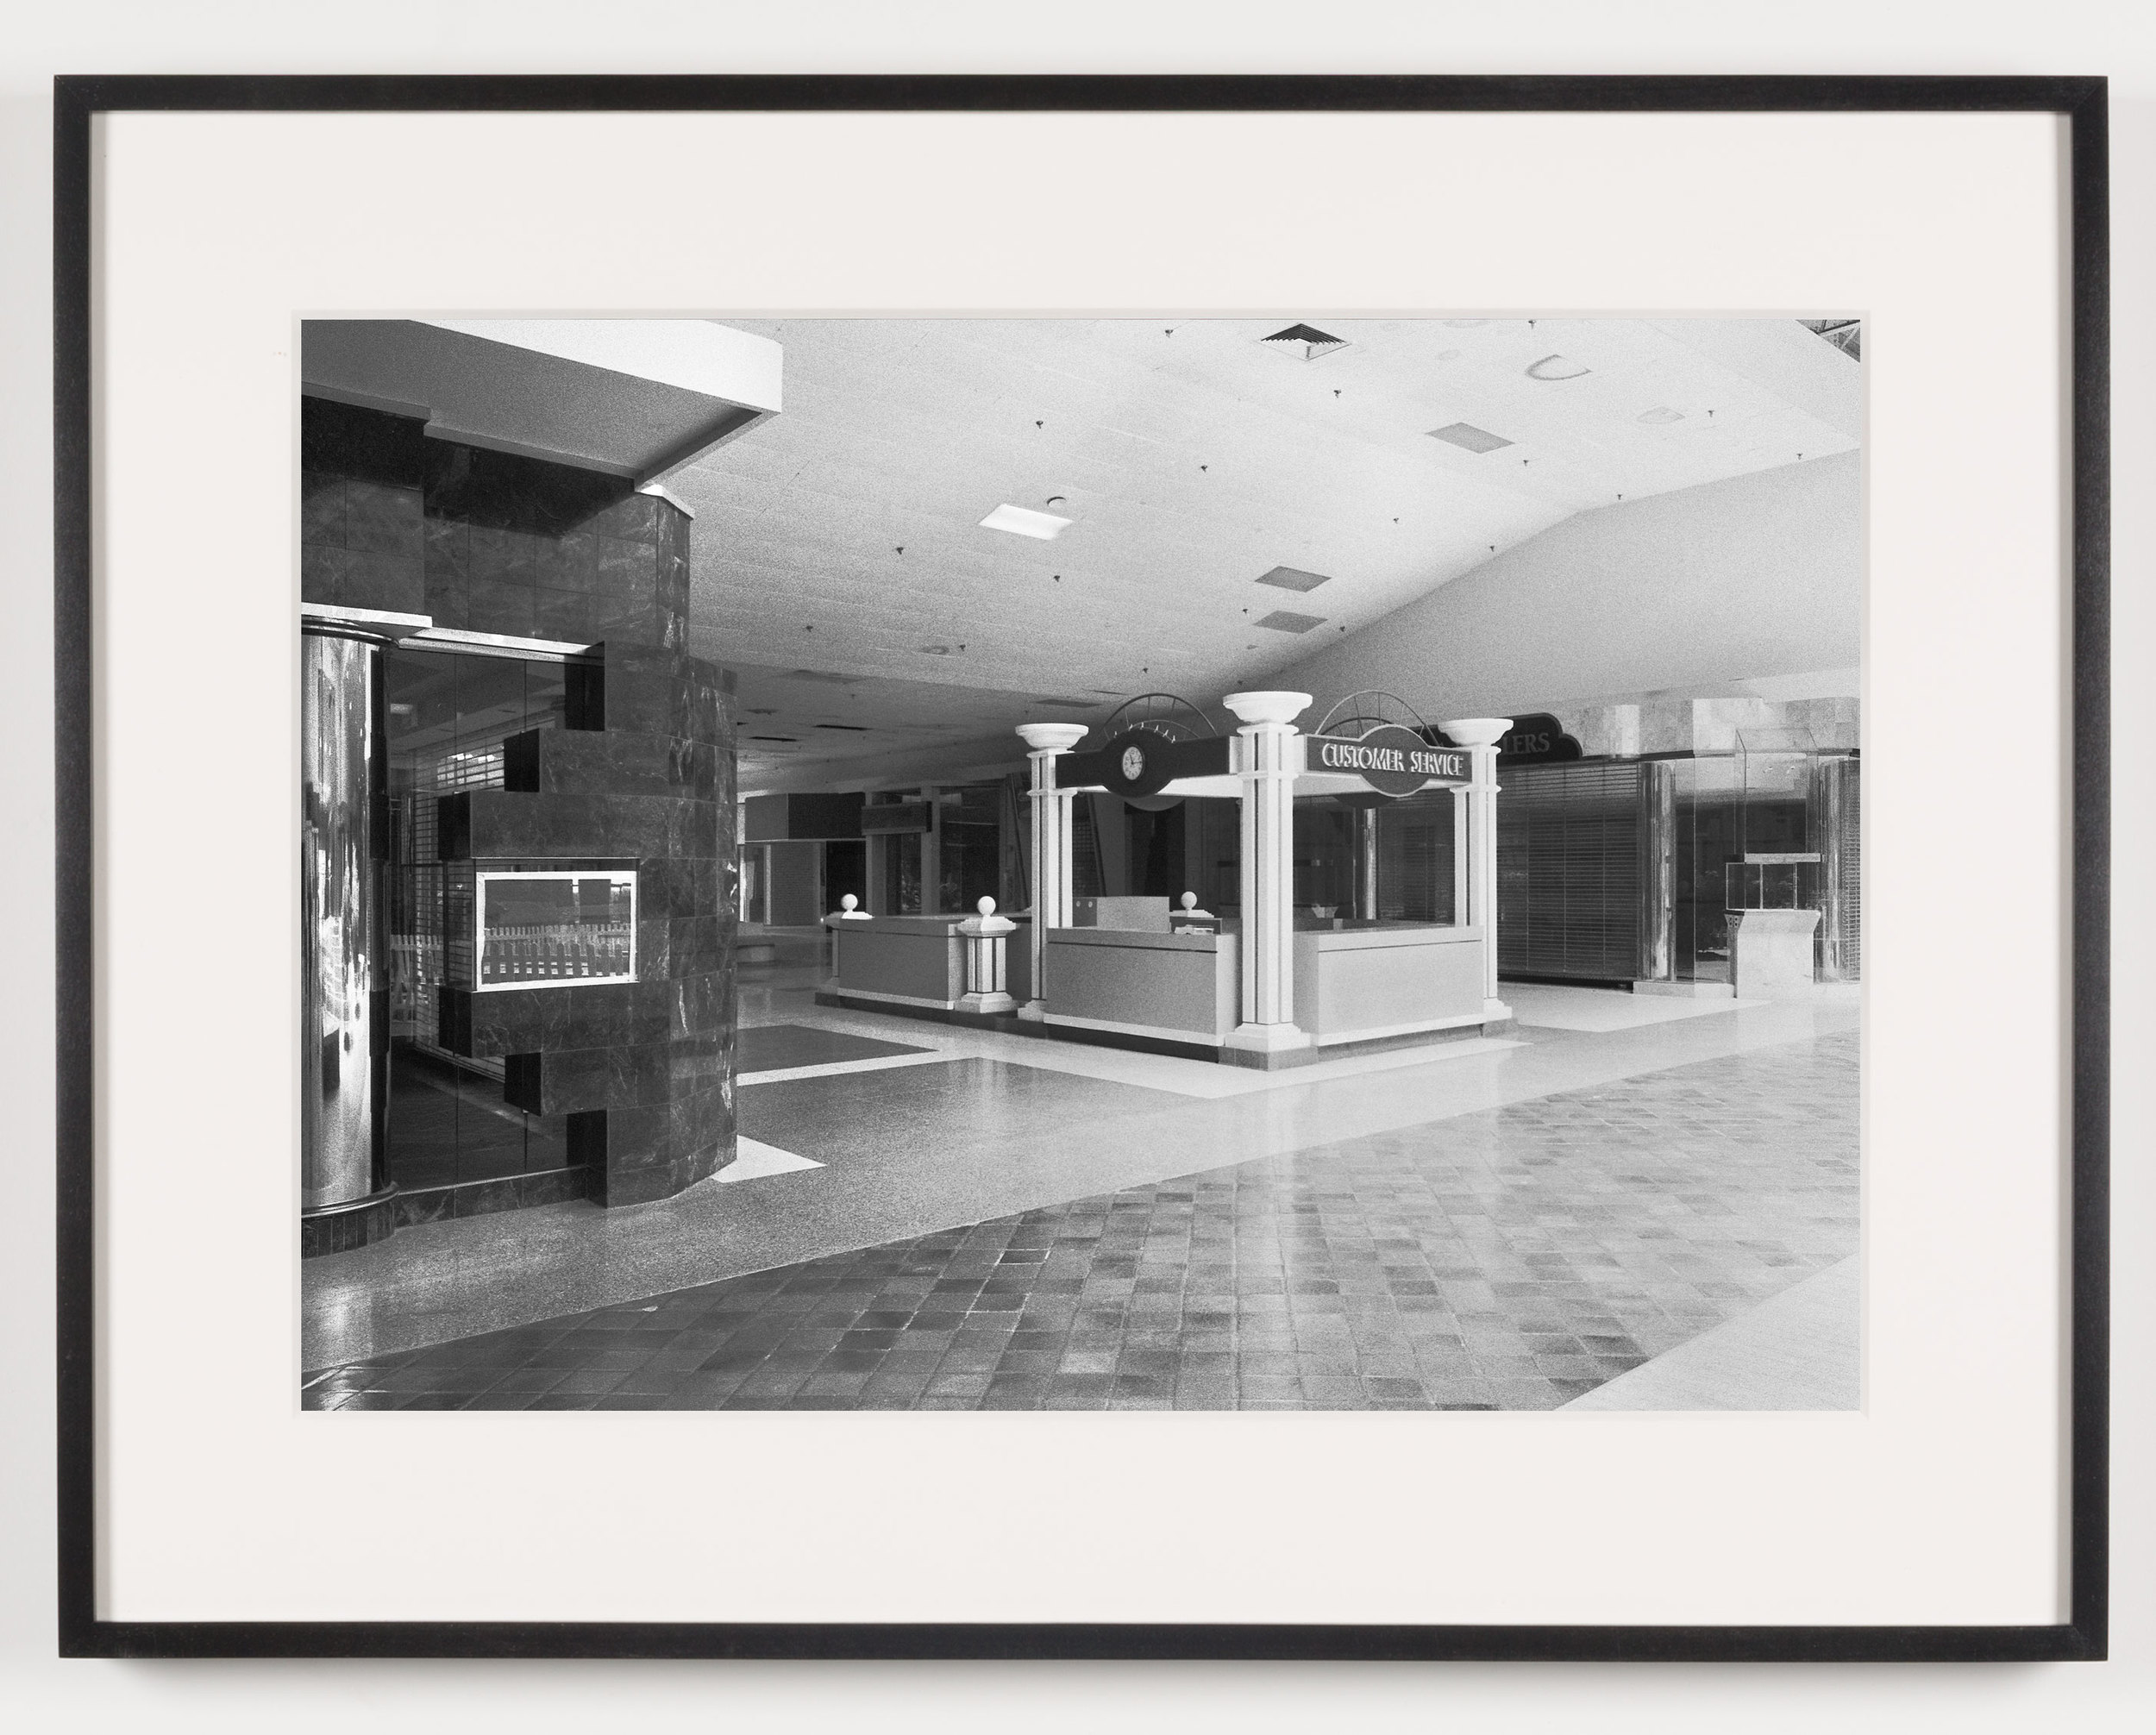 Rolling Acres Mall (View of Customer Service Kiosk), Akron, OH, Est. 1975    2011   Epson Ultrachrome K3 archival ink jet print on Hahnemühle Photo Rag paper  21 5/8 x 28 1/8 inches   A Diagram of Forces, 2011